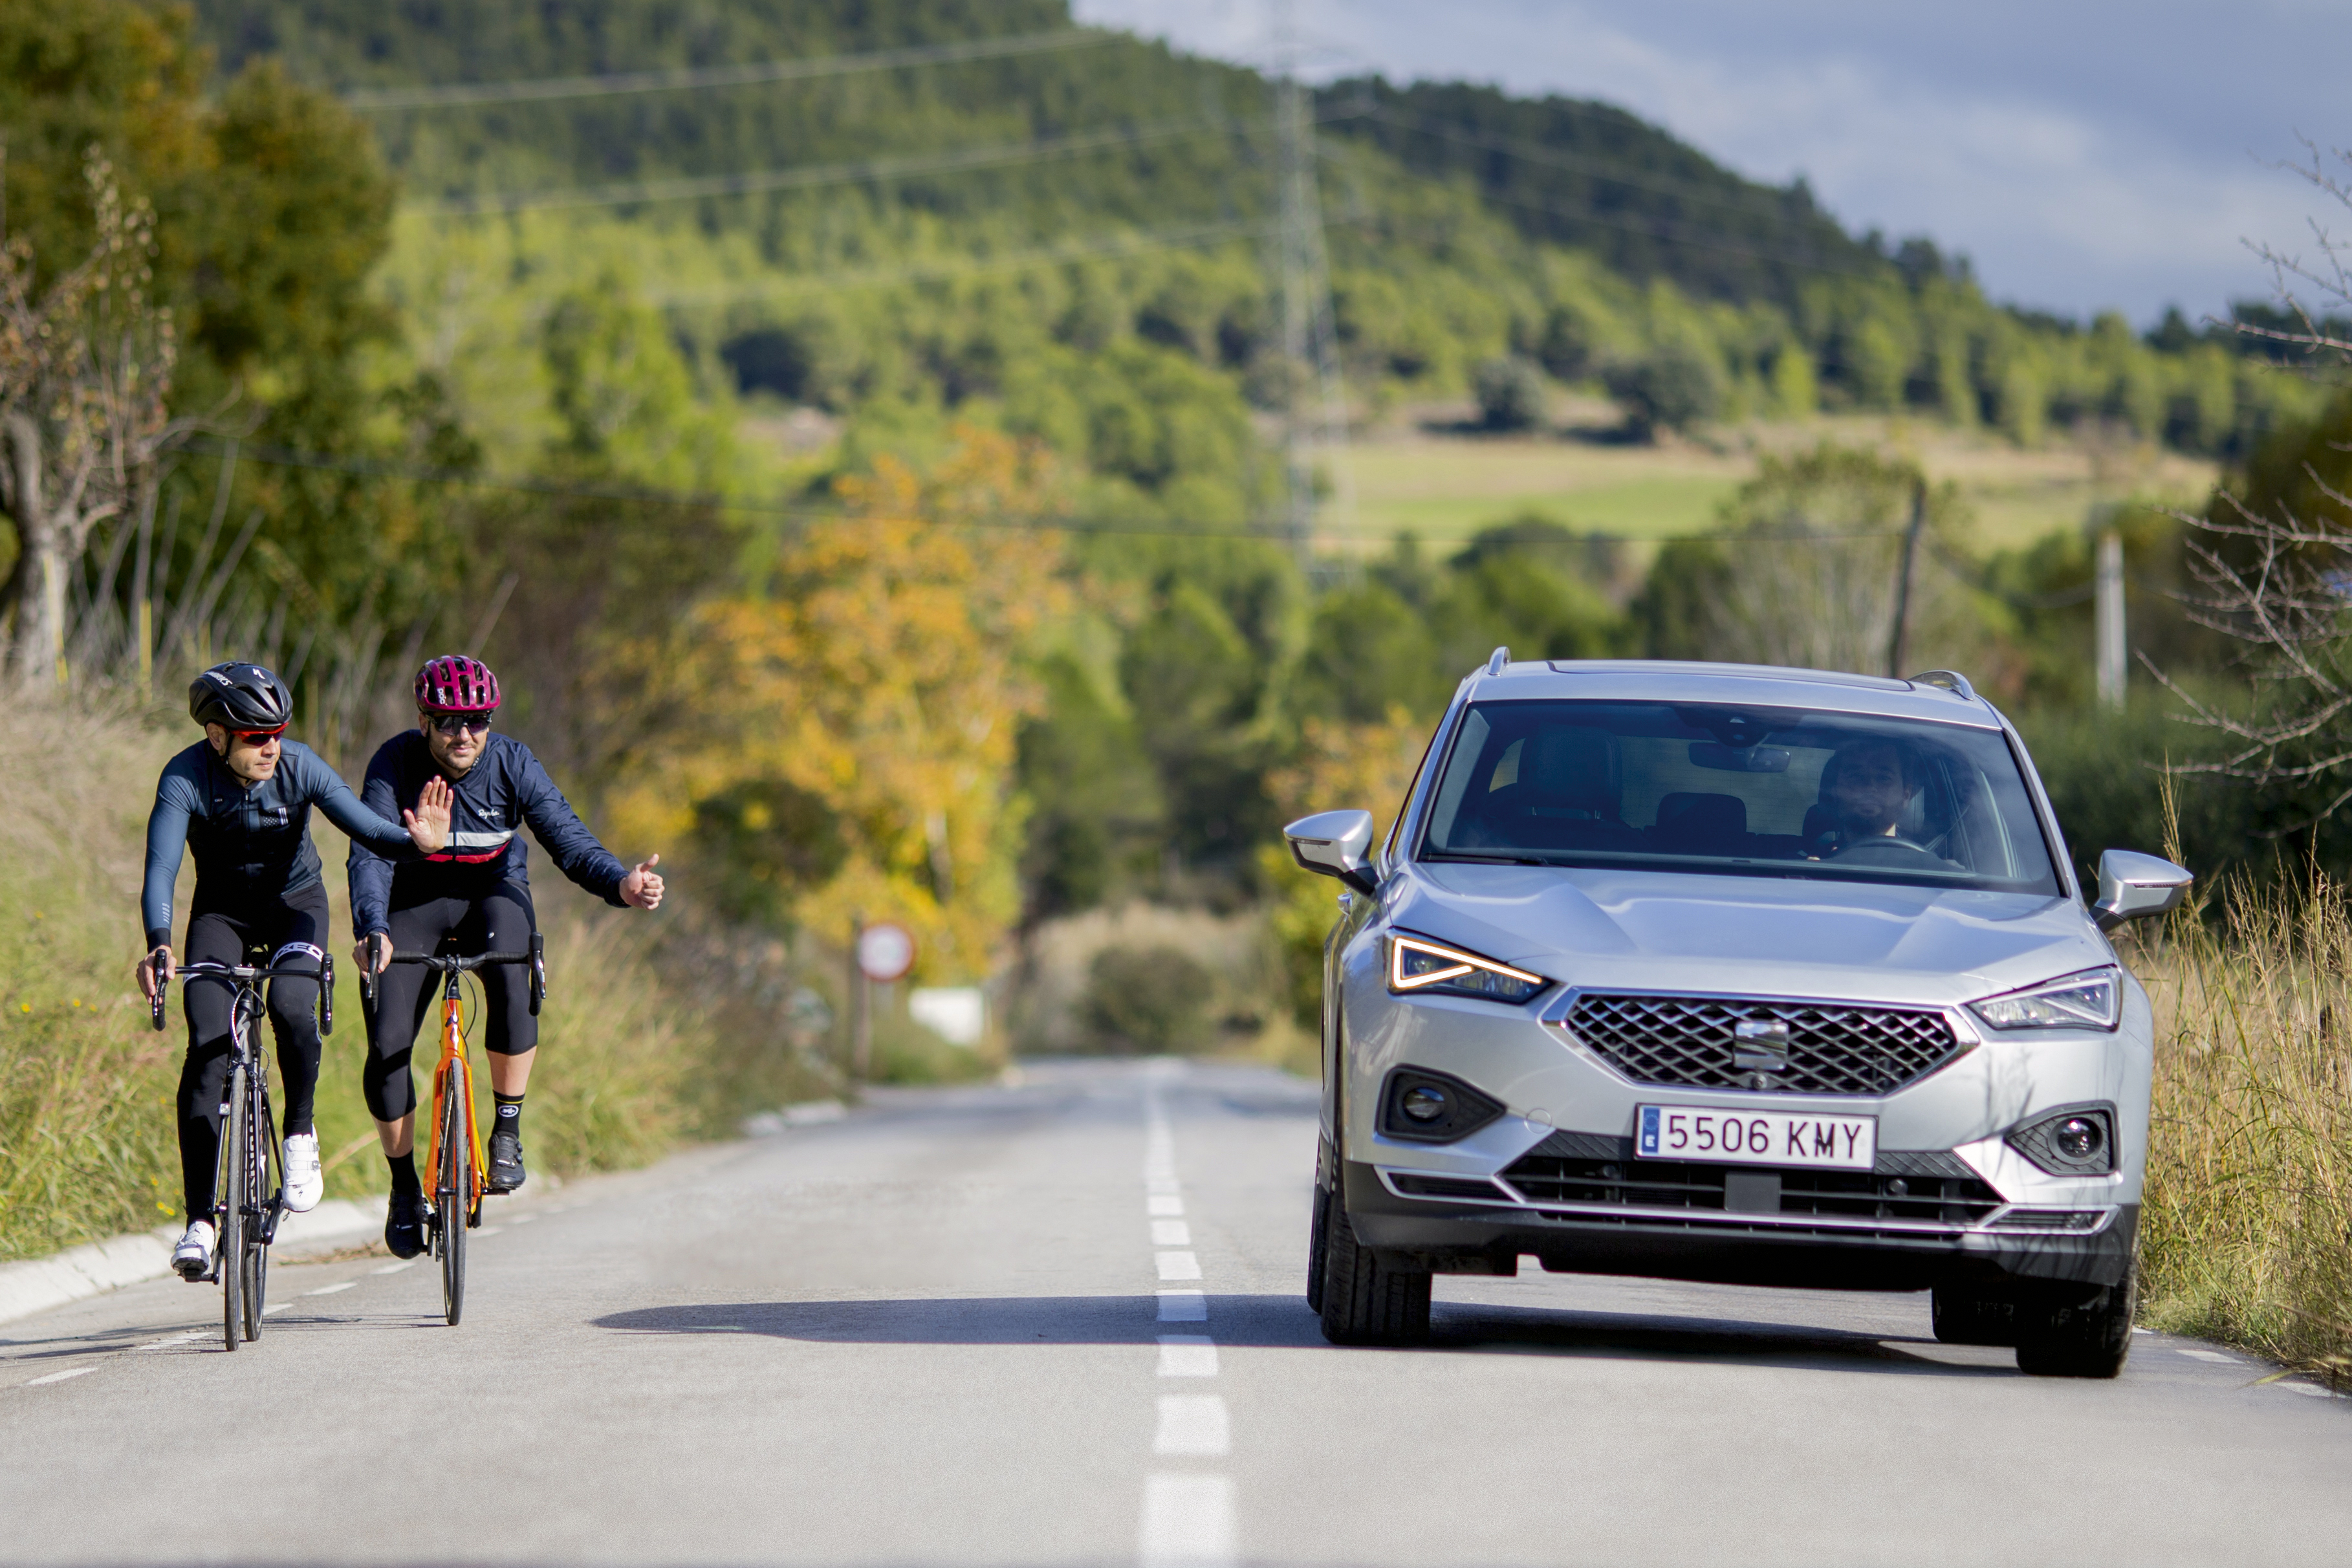 In order to overtake cyclists correctly: reduce the speed and maintain the safety distance